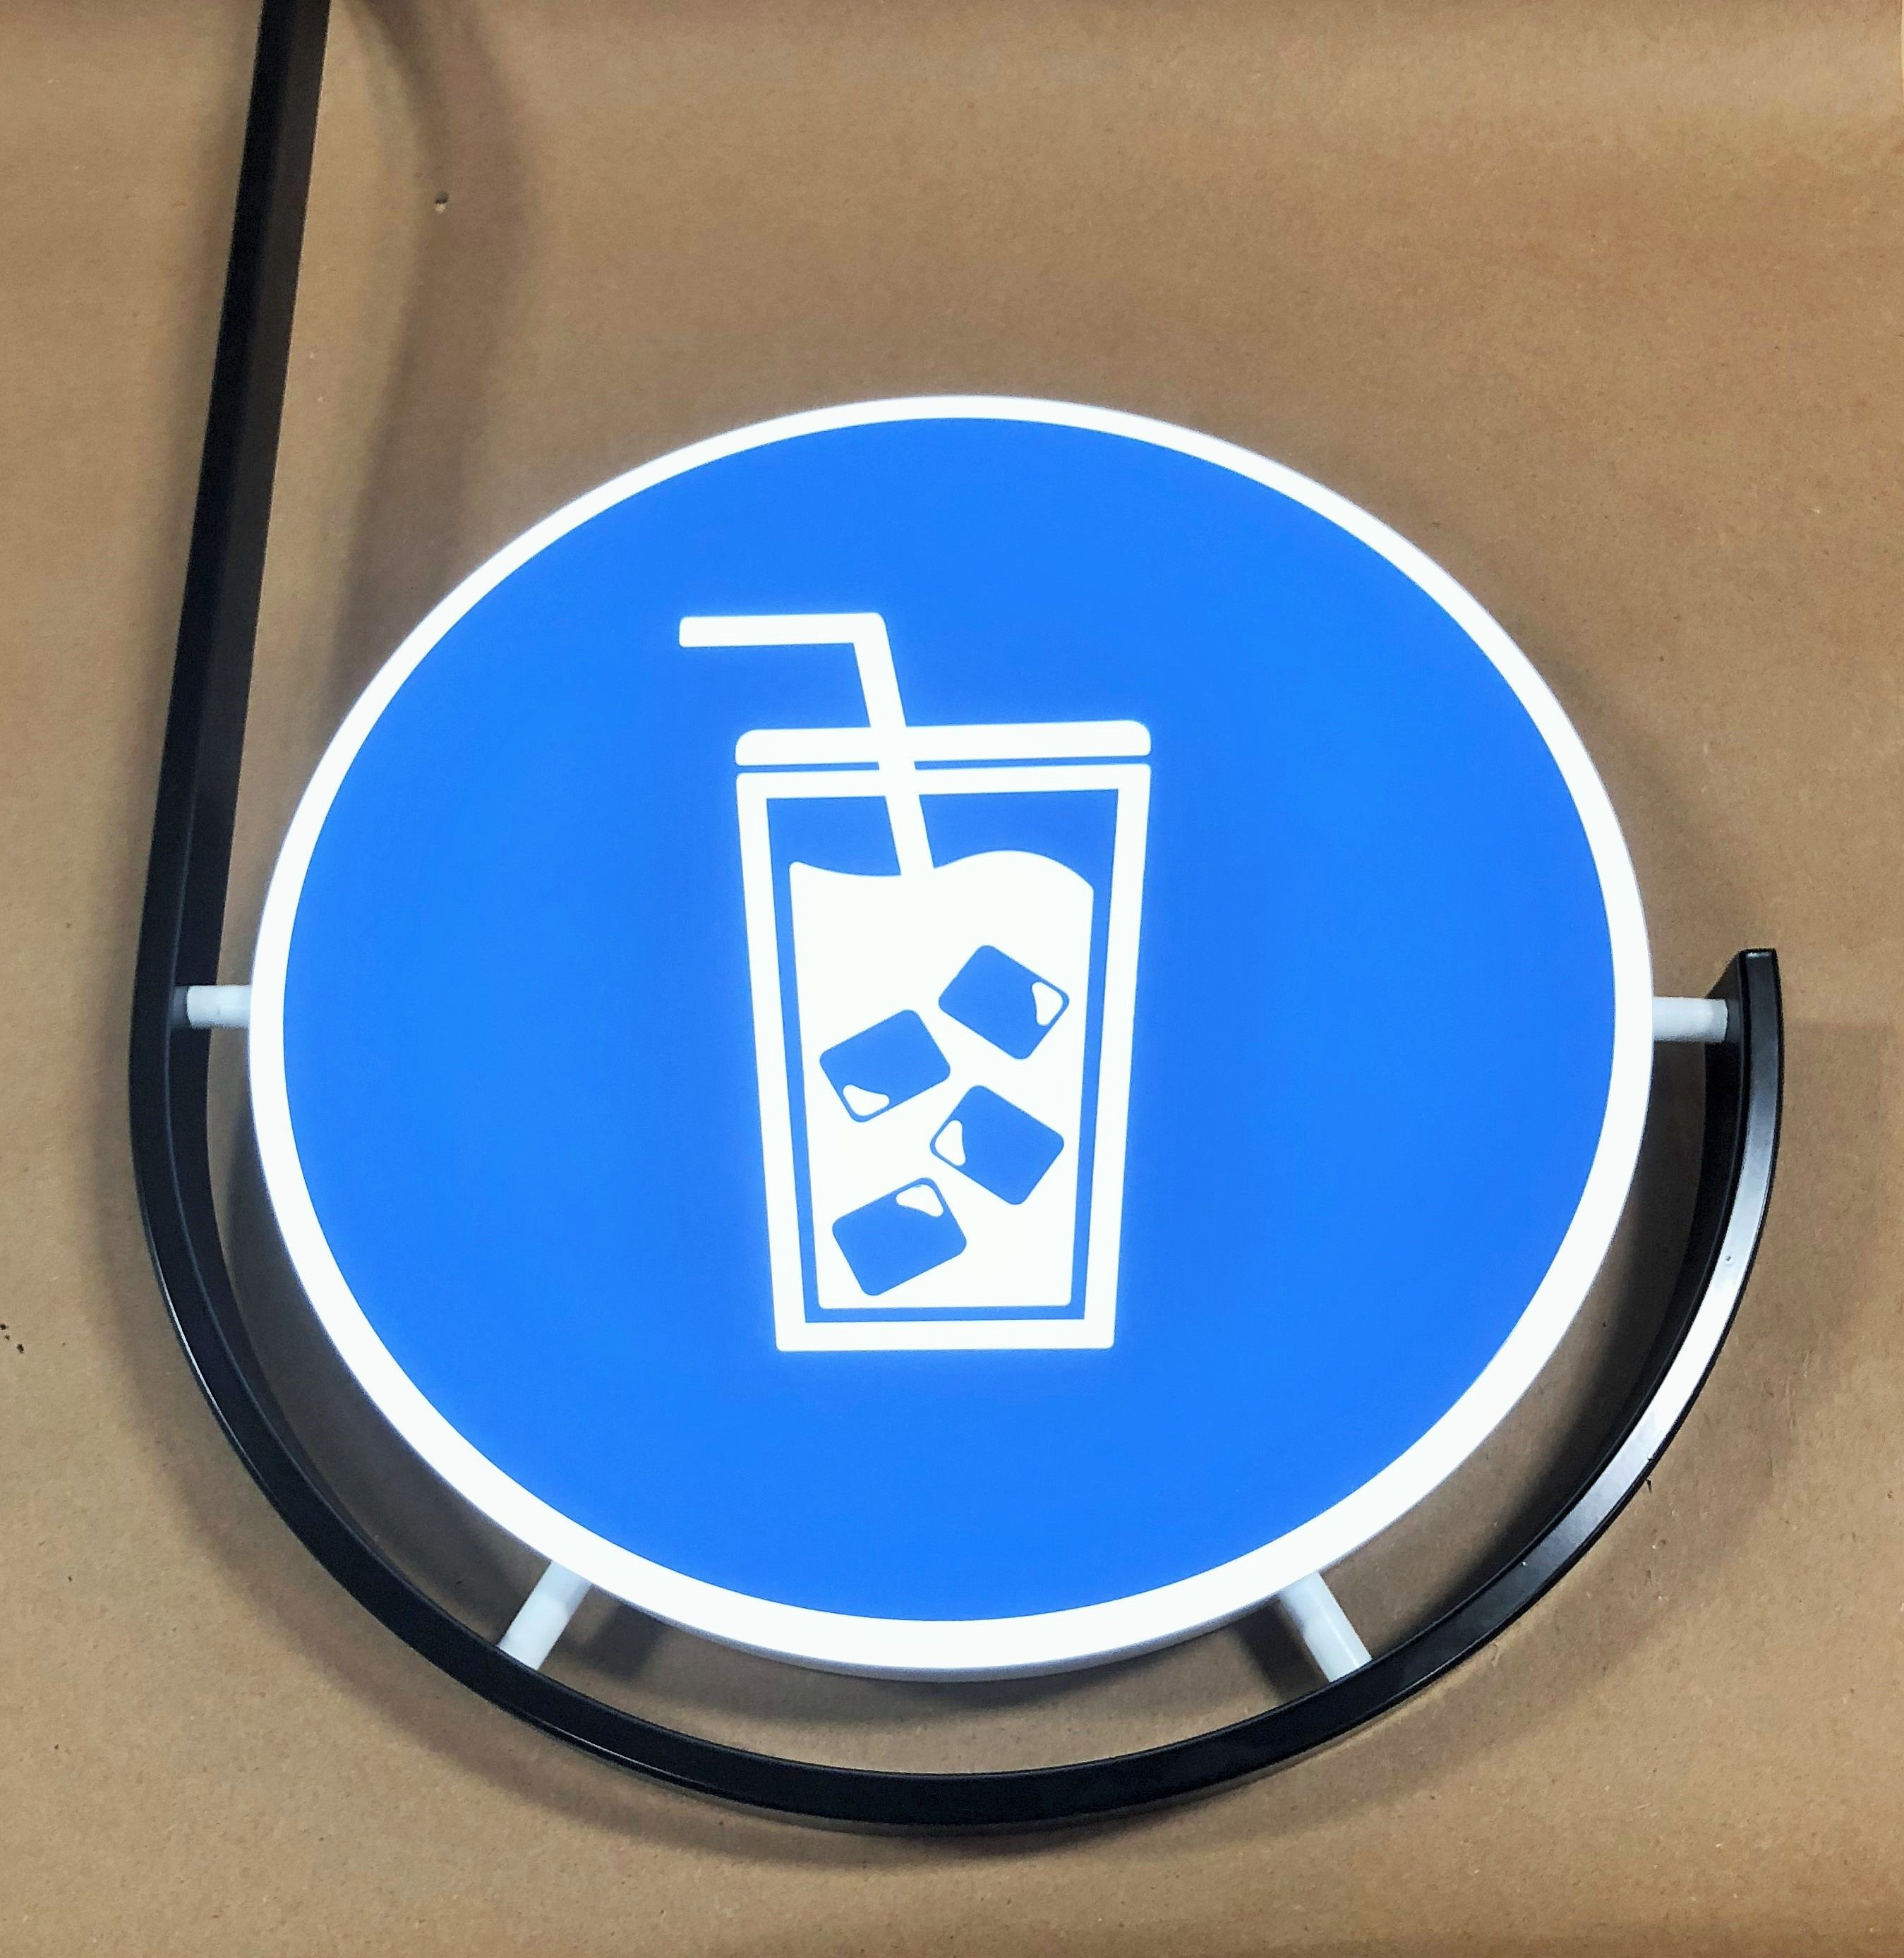 Lightbox Signs | Interior Signage & Indoor Signs | Restaurant and Food Service Signs